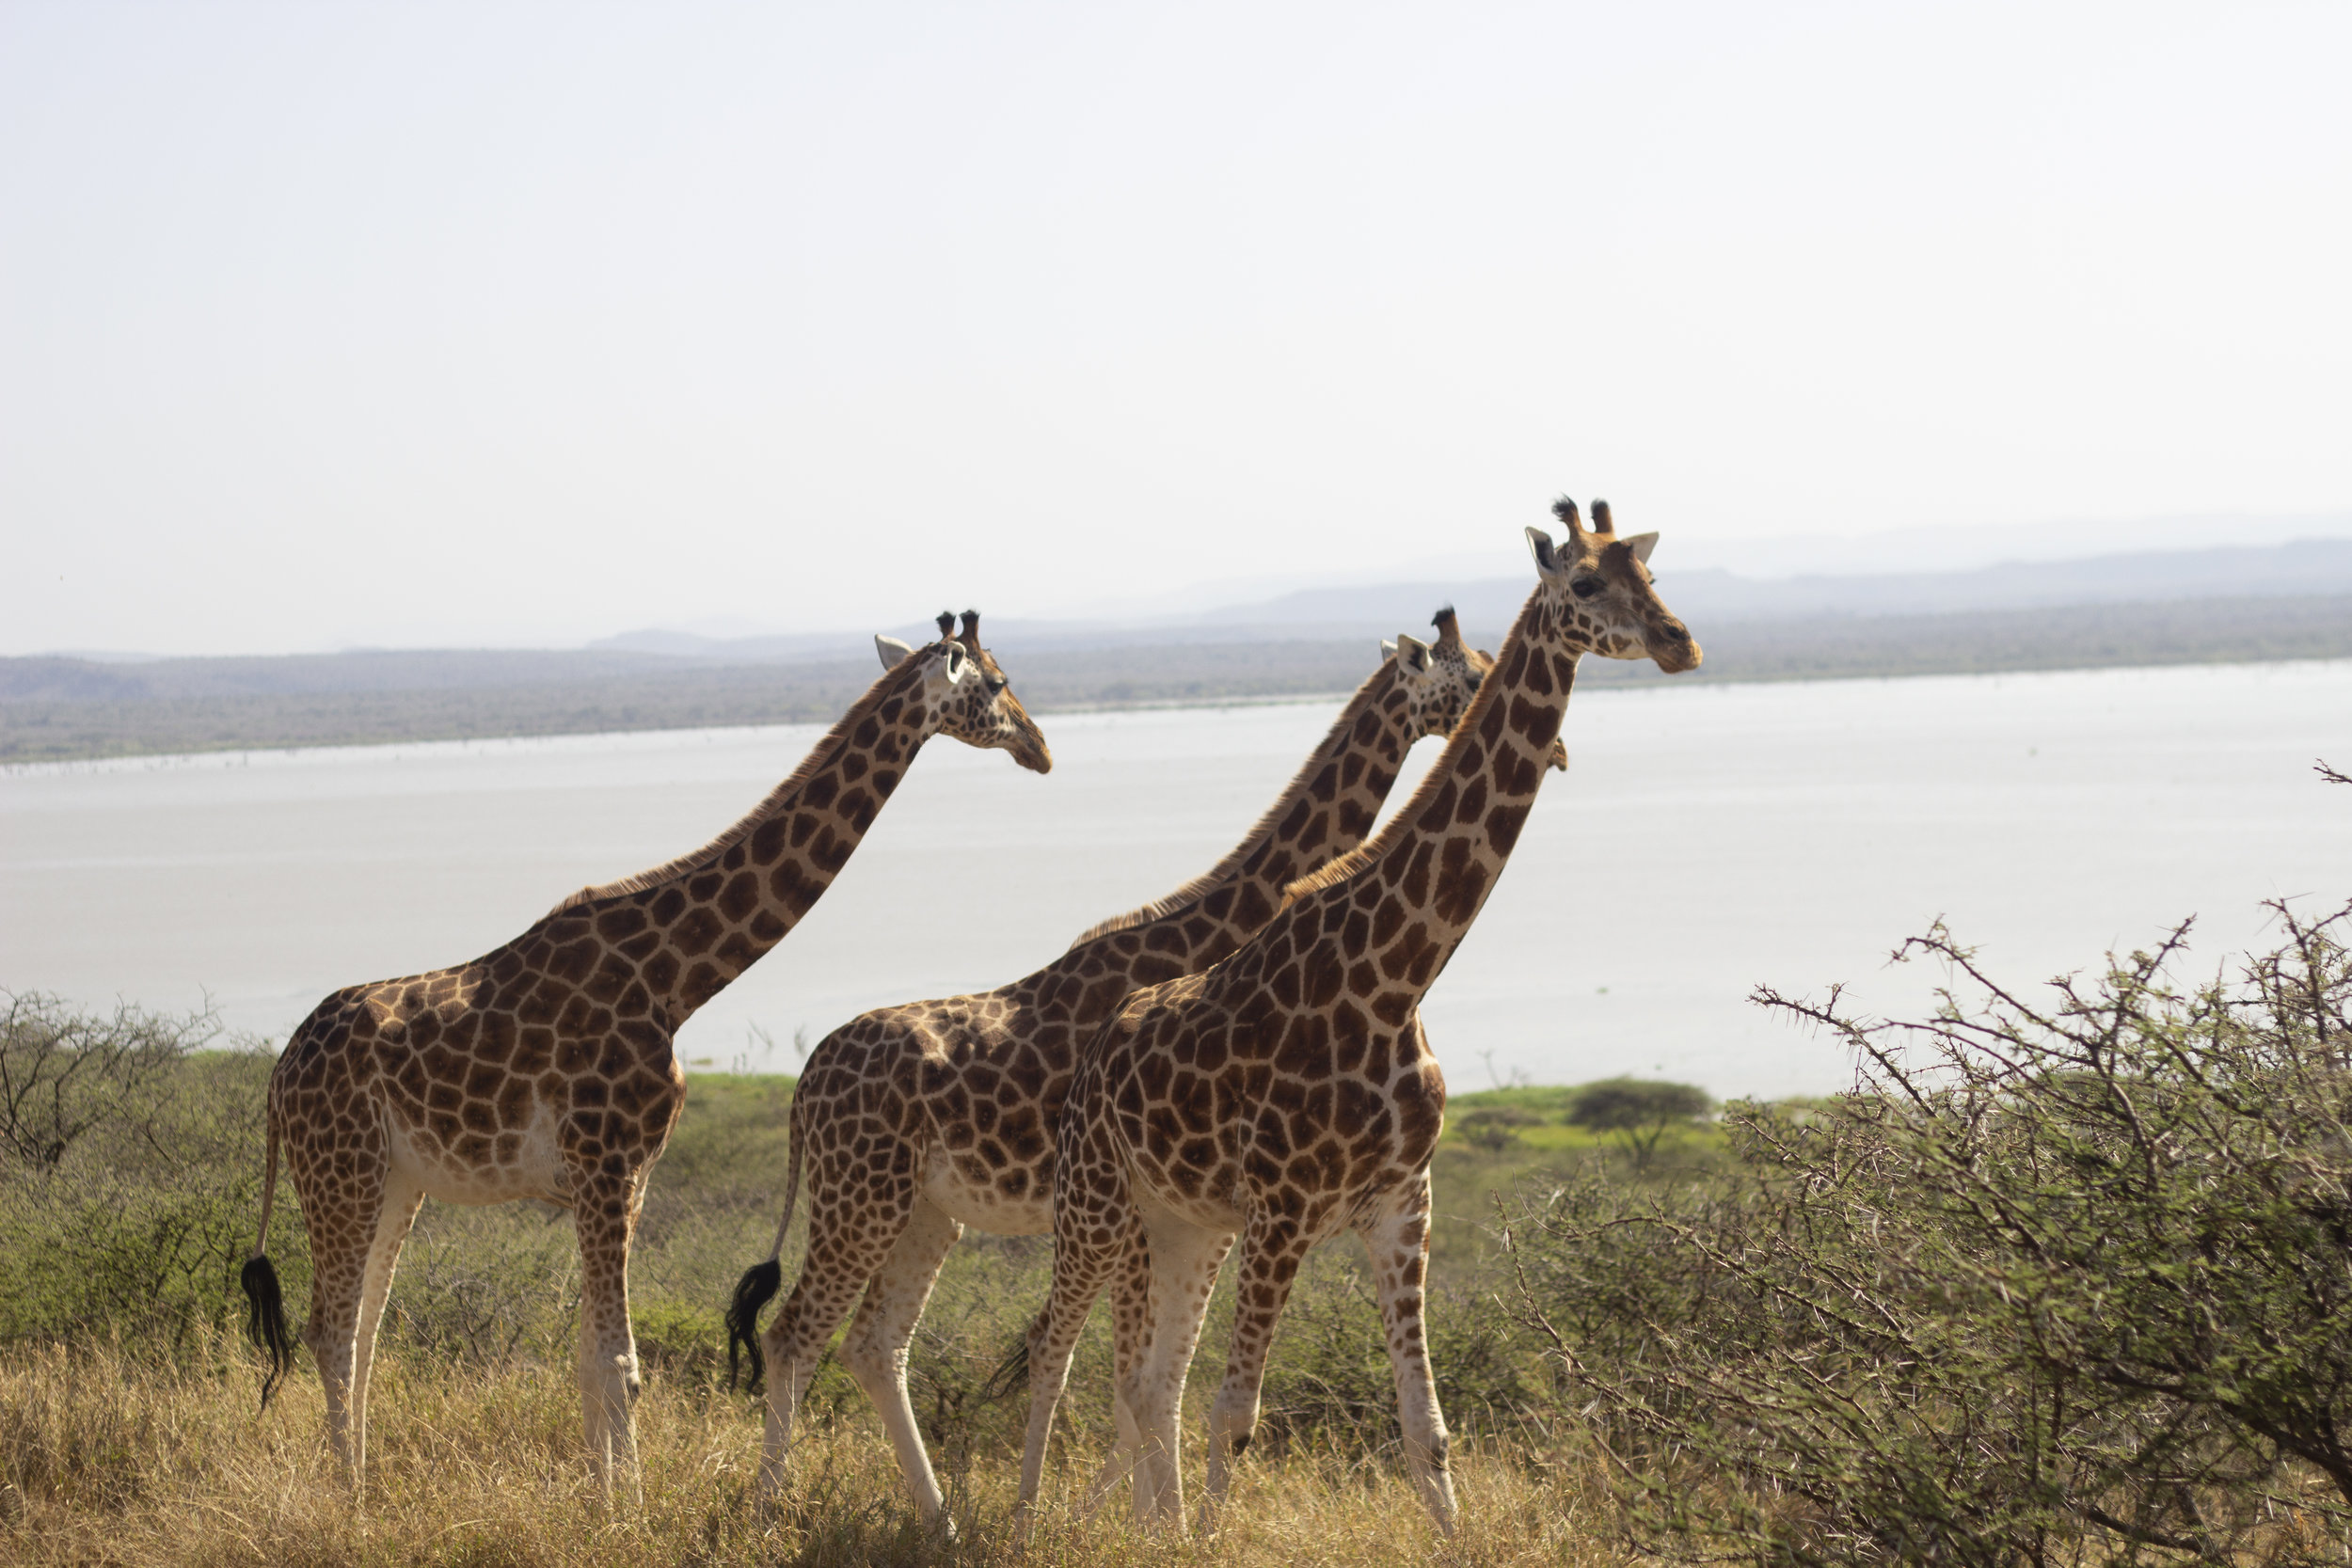 Three of Ruko's Rothschild giraffes, who were transported to the island by boat in 2012. Photo: Ivy Wairimu